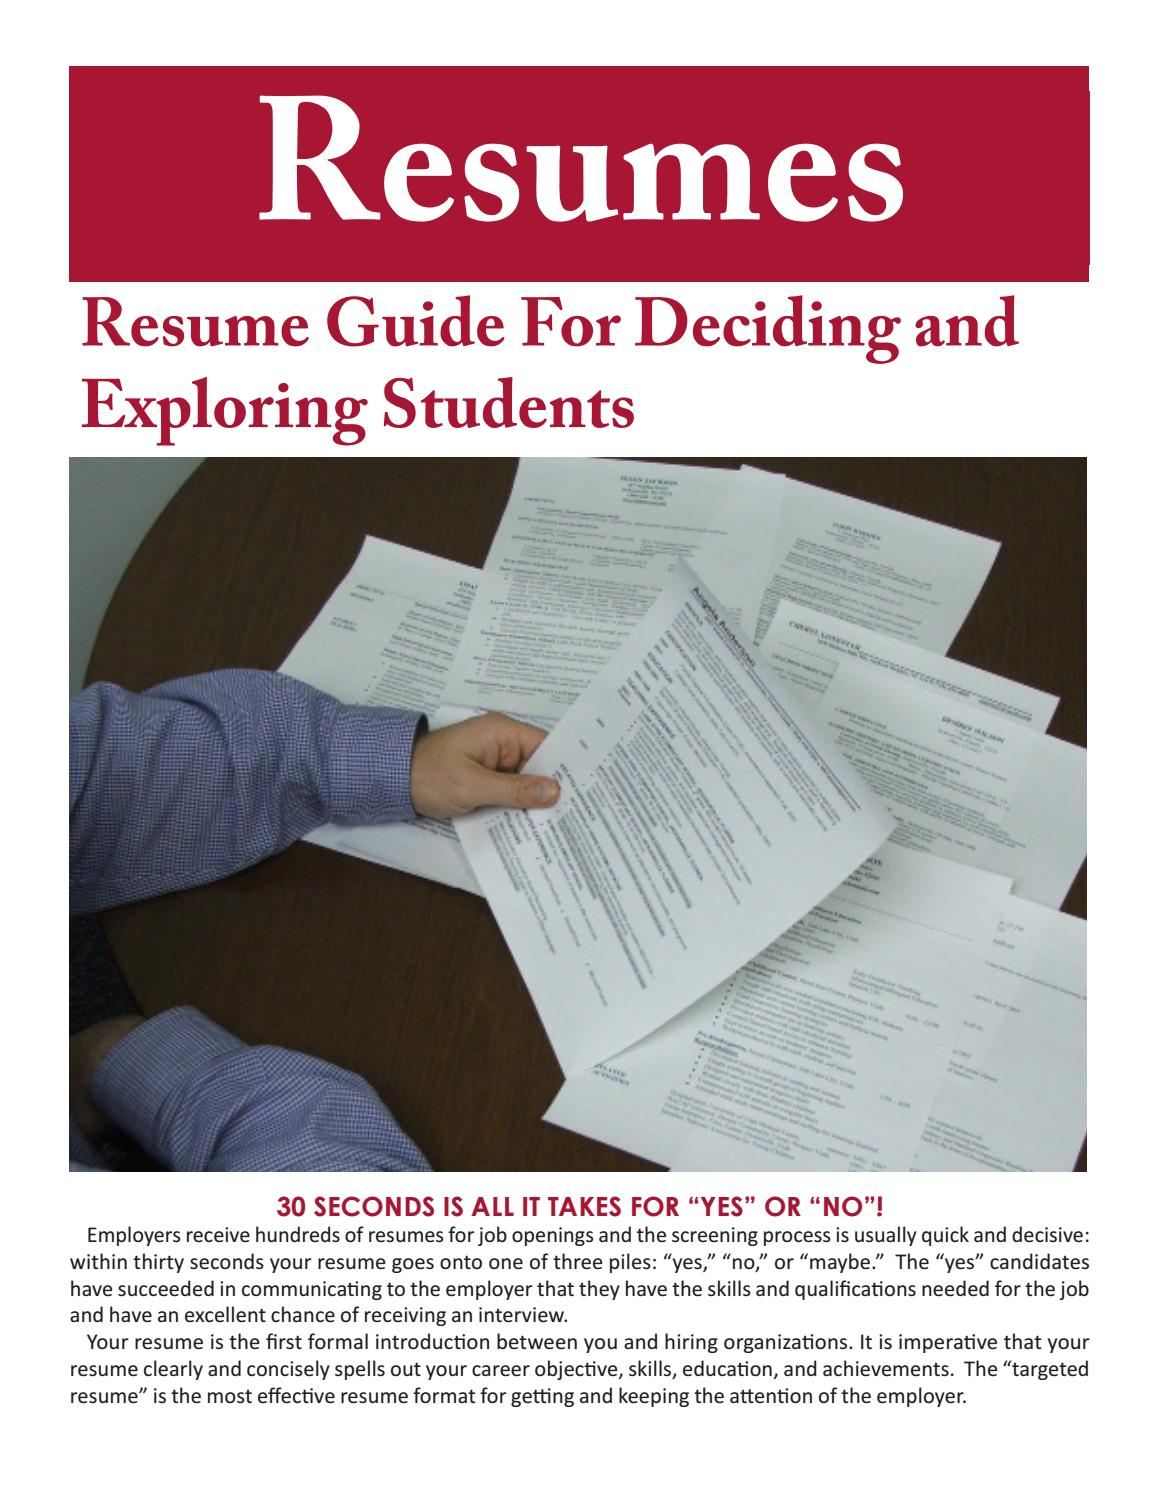 alumni resume writing guide